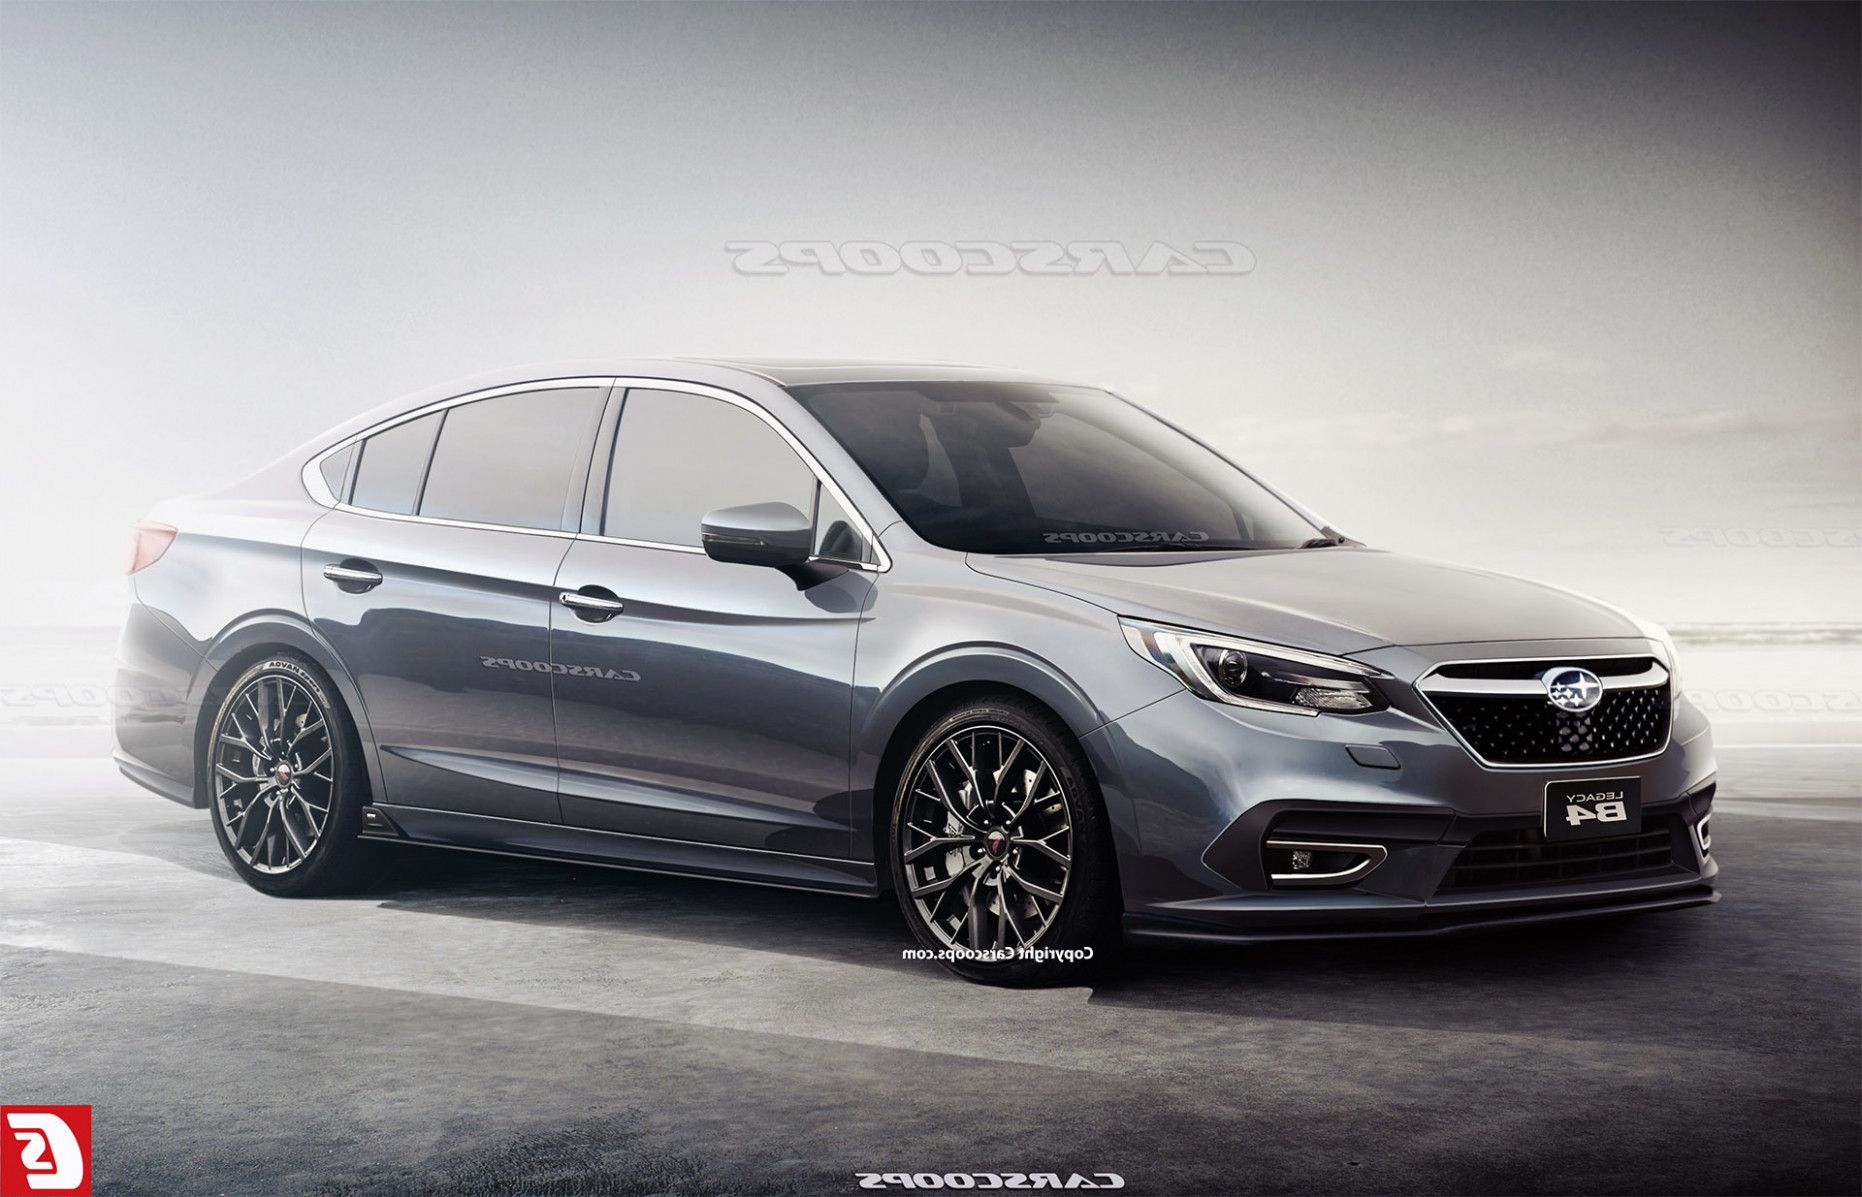 10 Reasons Why 2020 Subaru Legacy 3 6r Limited Is Common In Usa Subaru Legacy Subaru Common Myths